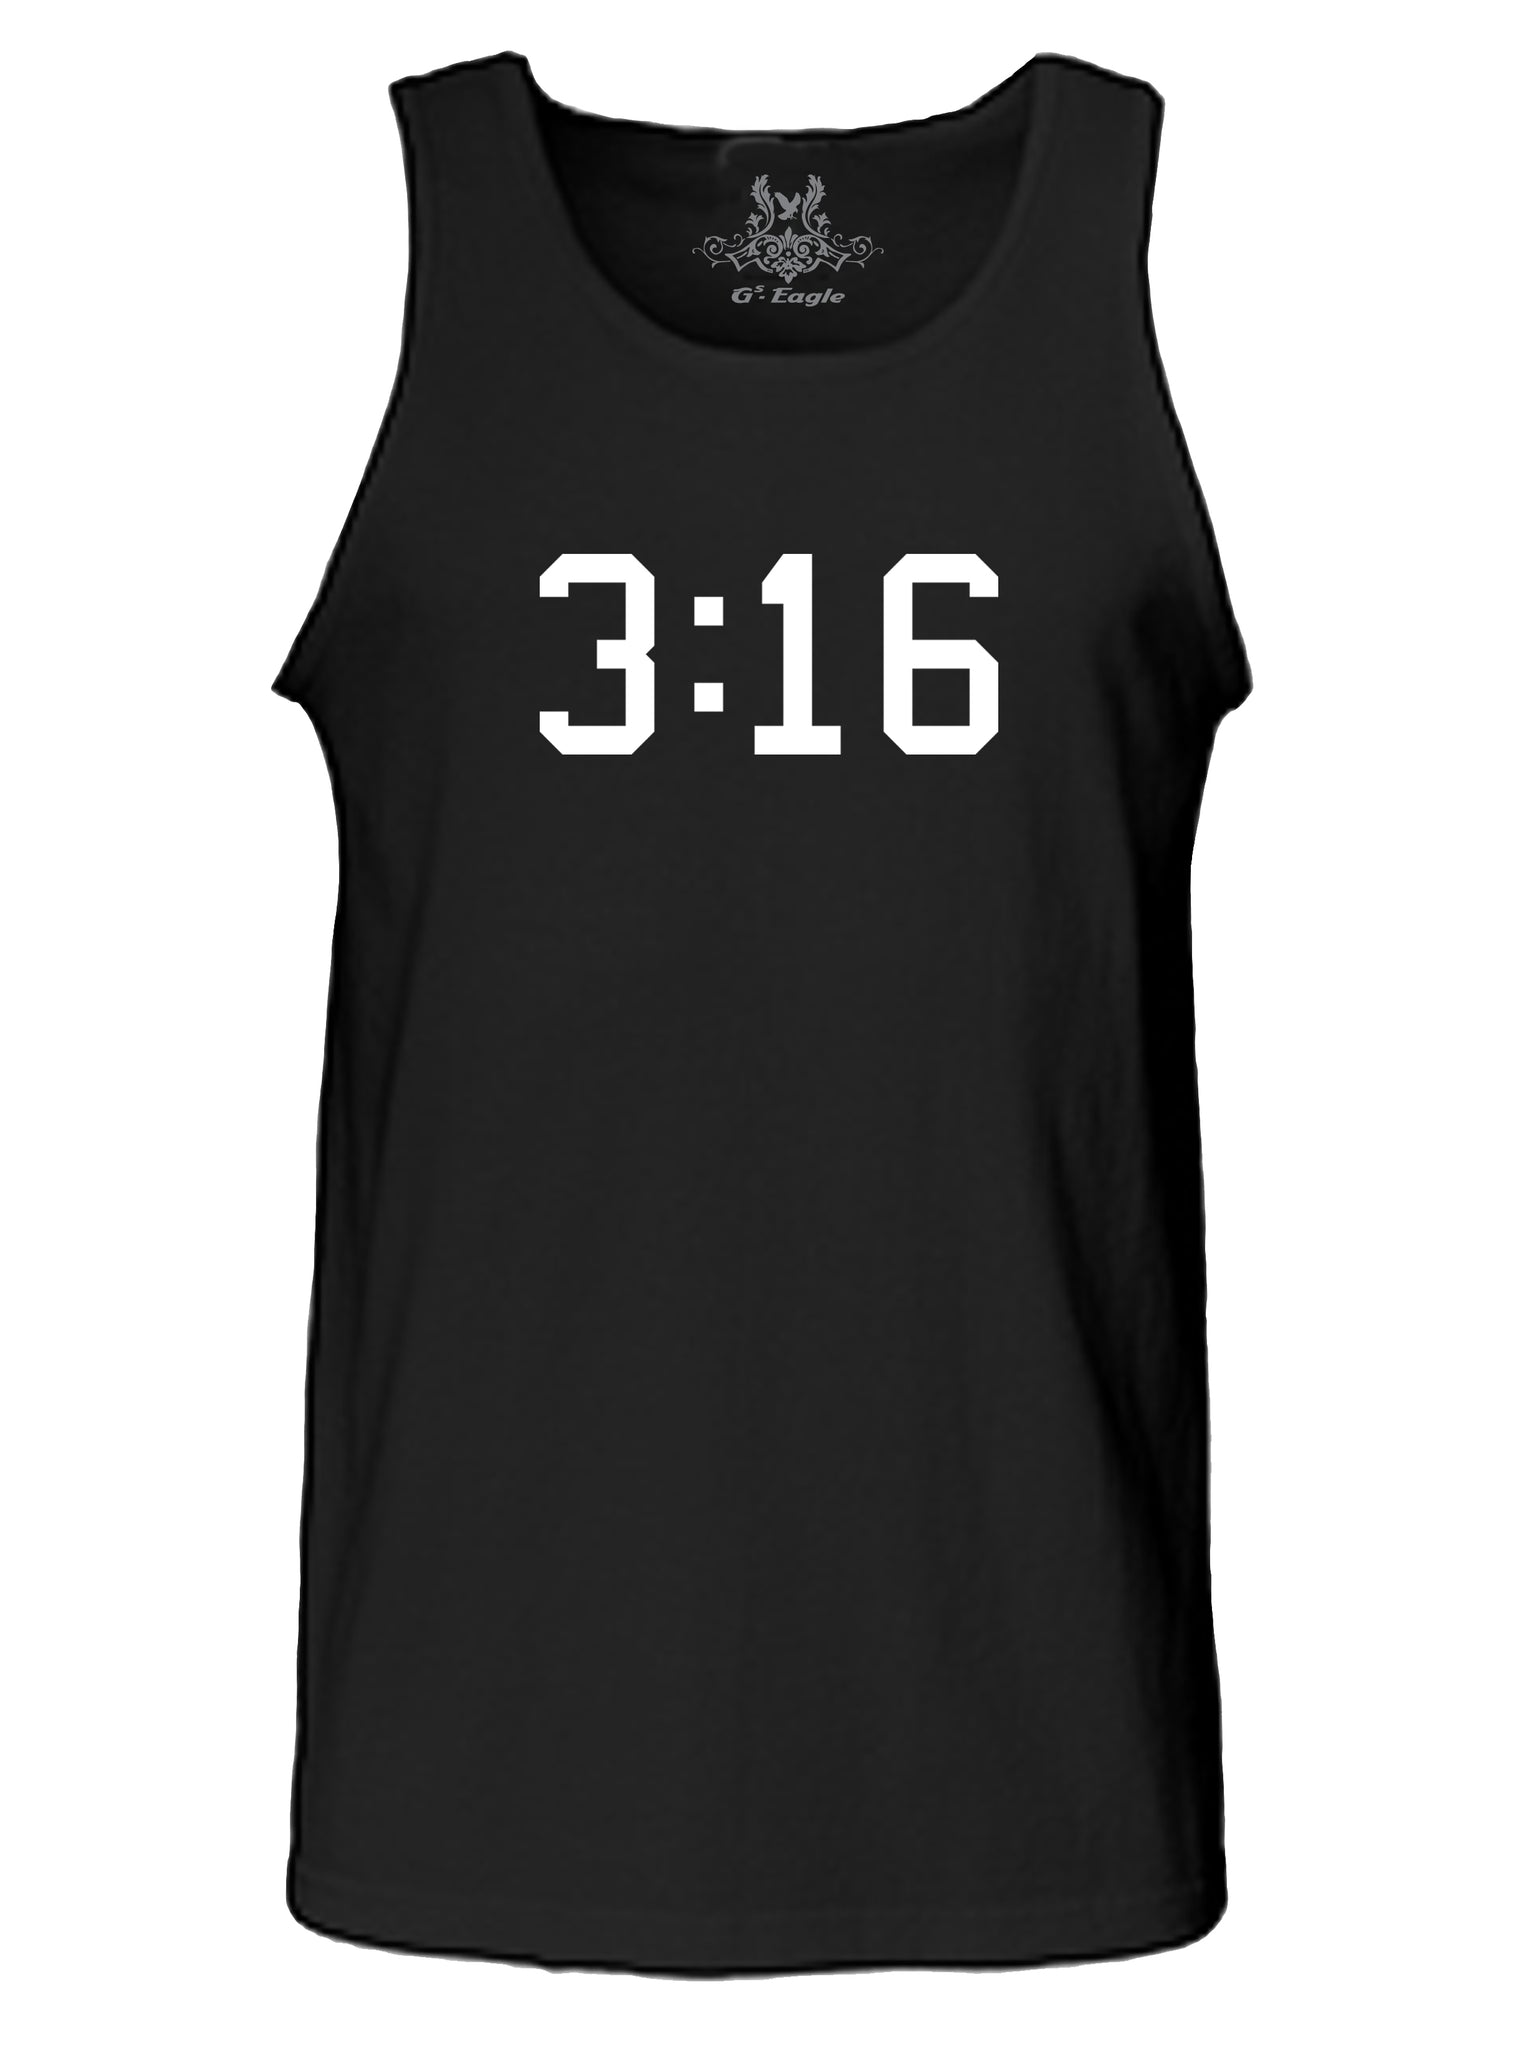 3:16 Graphic Print Tank Top